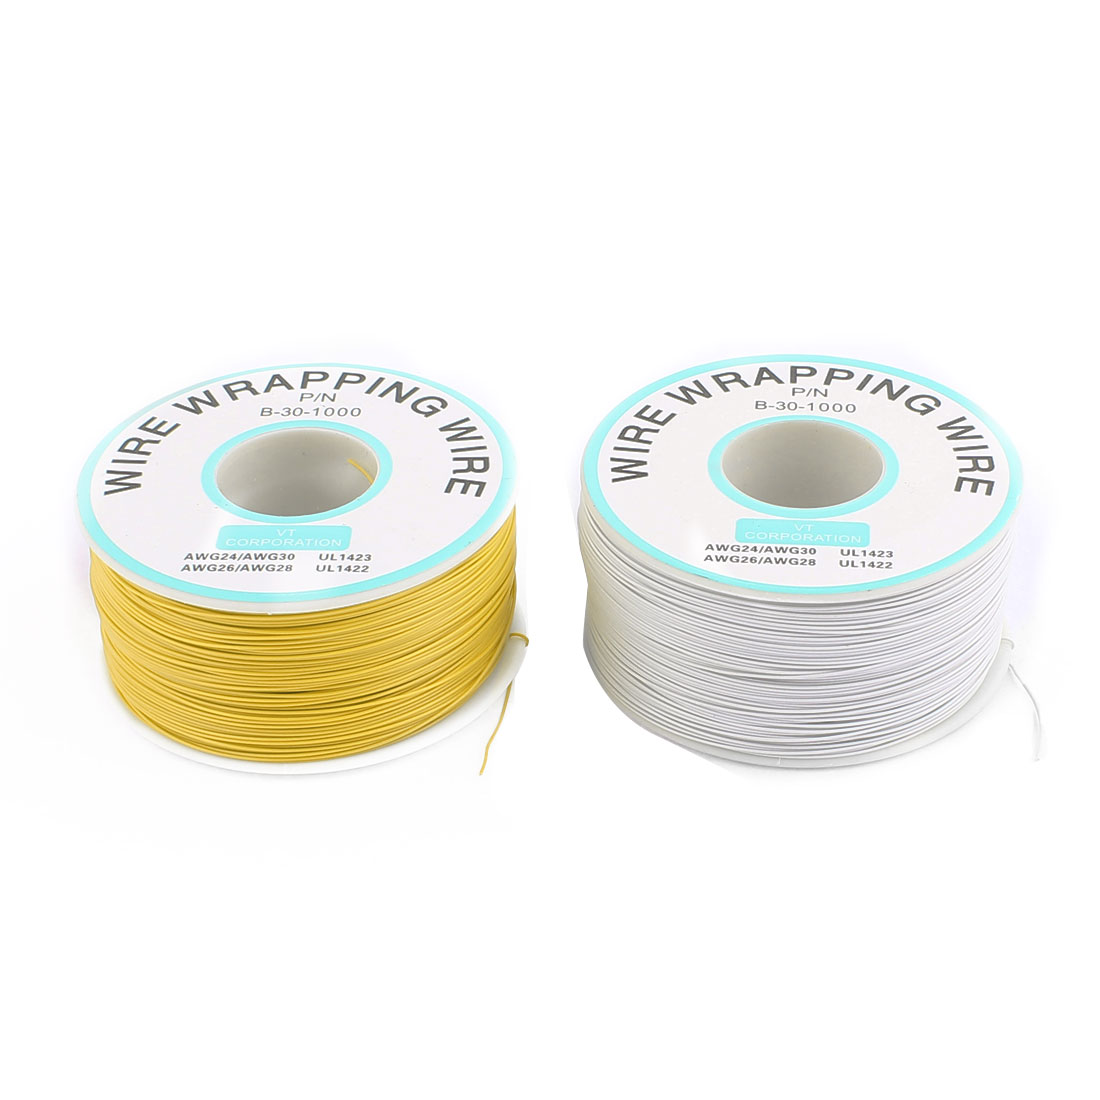 2 Pcs High Temperature Resistant Wraping Wire B-30-1000 Yellow and White